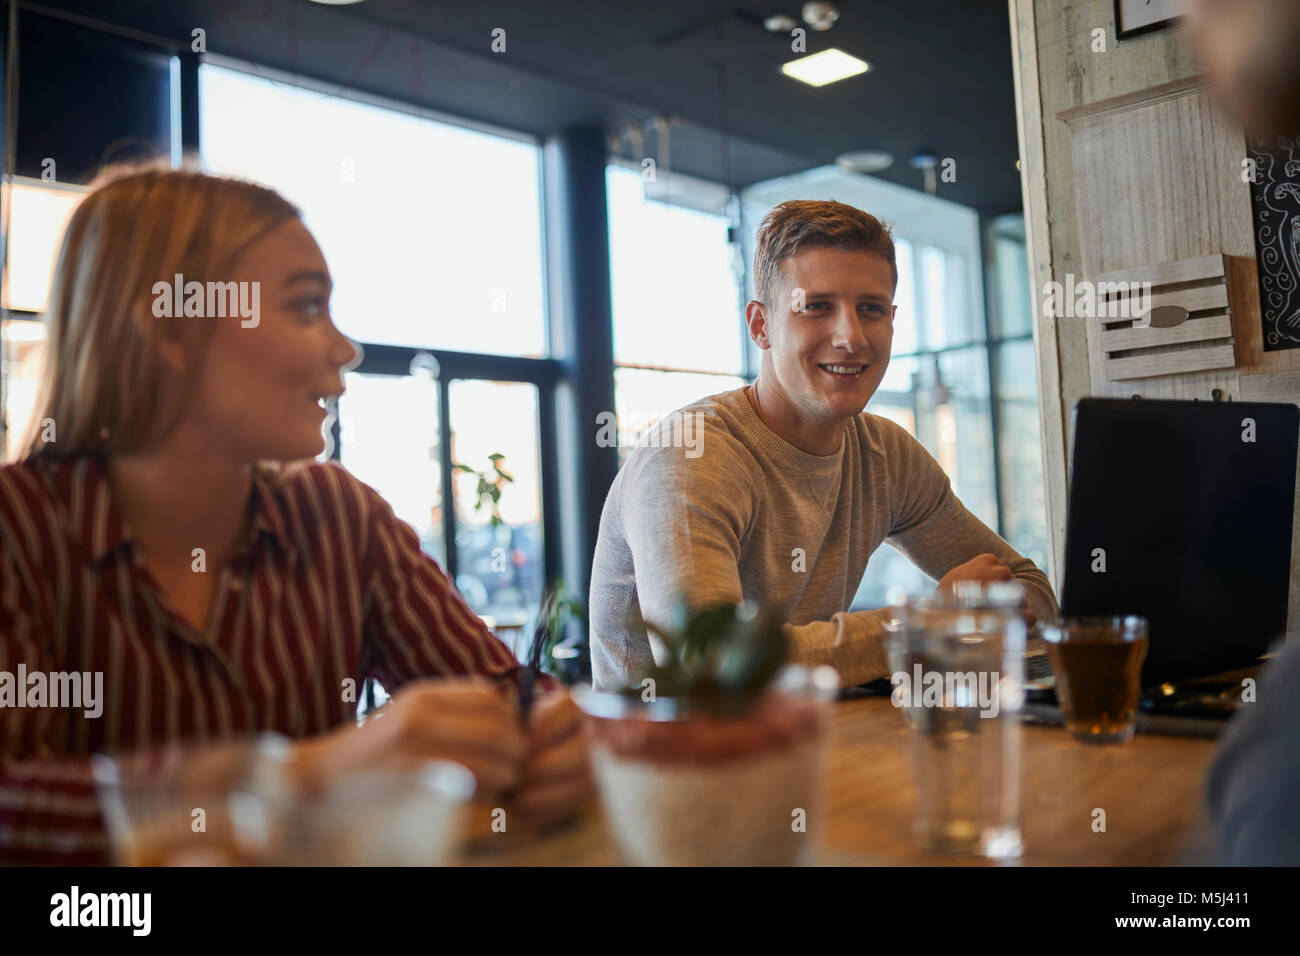 Smiling friends meeting in a cafe Photo Stock